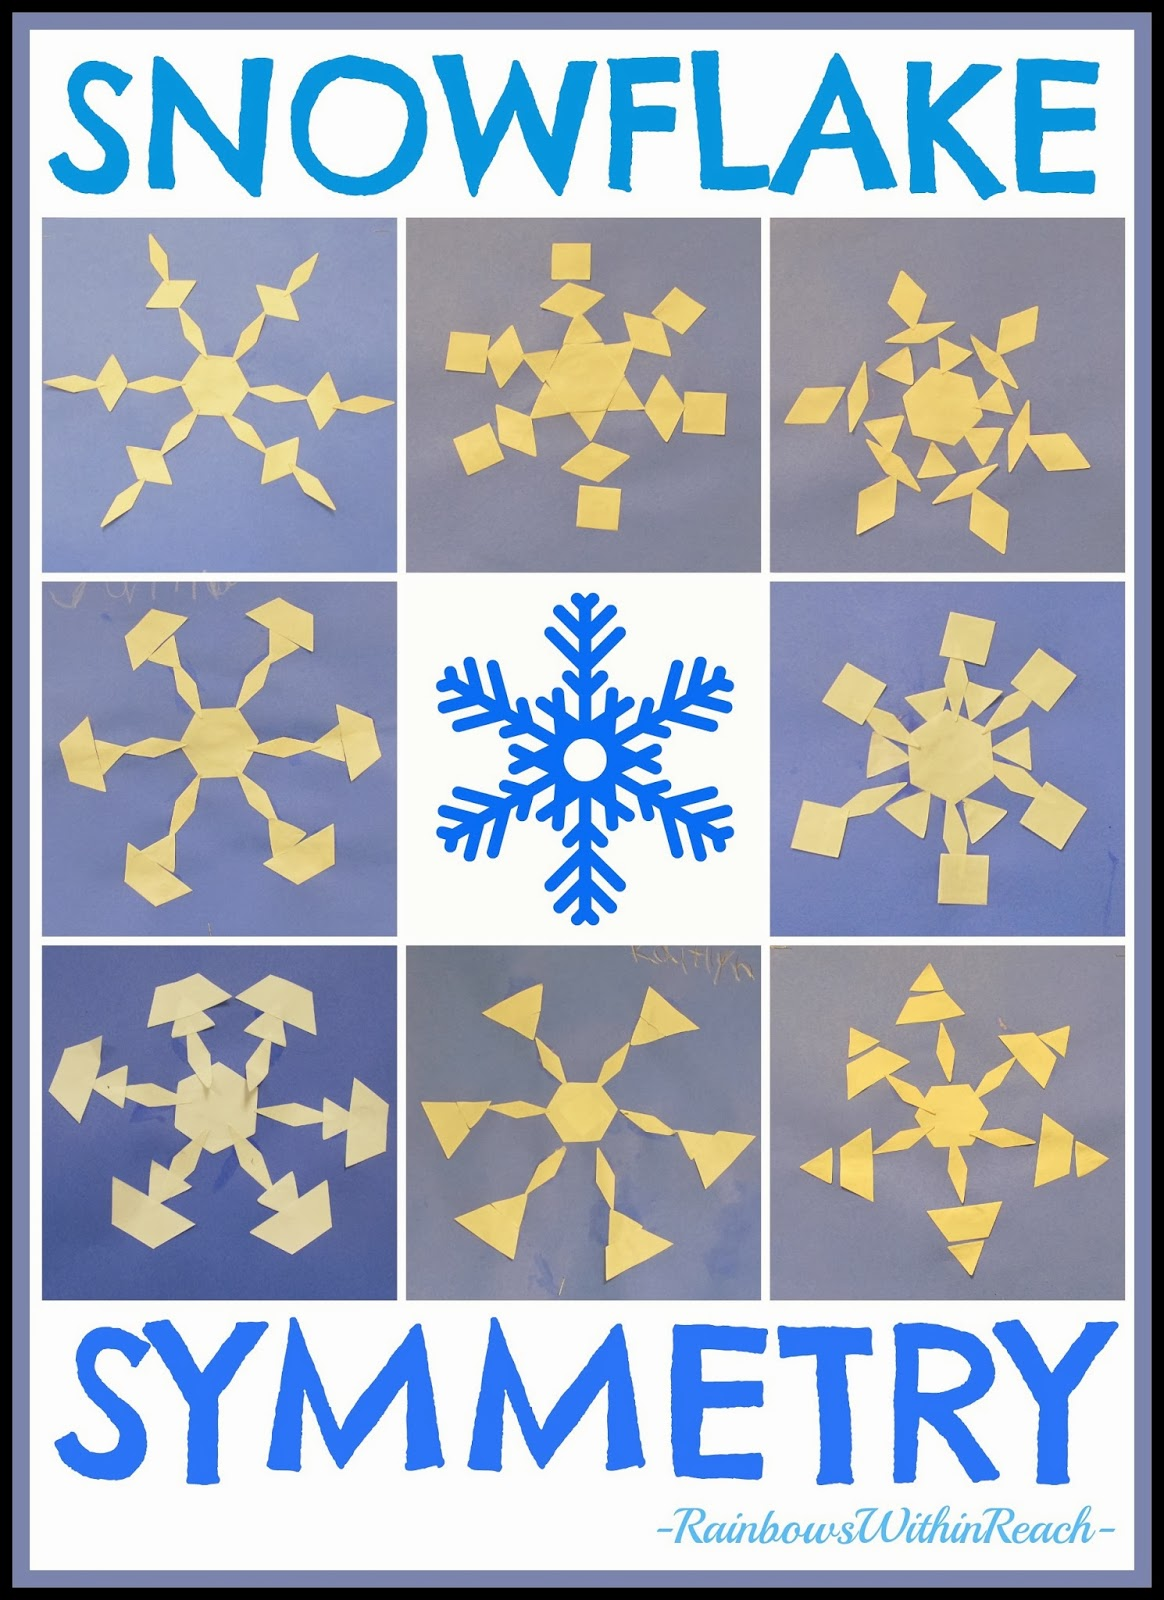 Snowflake Symmetry in Kindergarten via RainbowsWithinReach